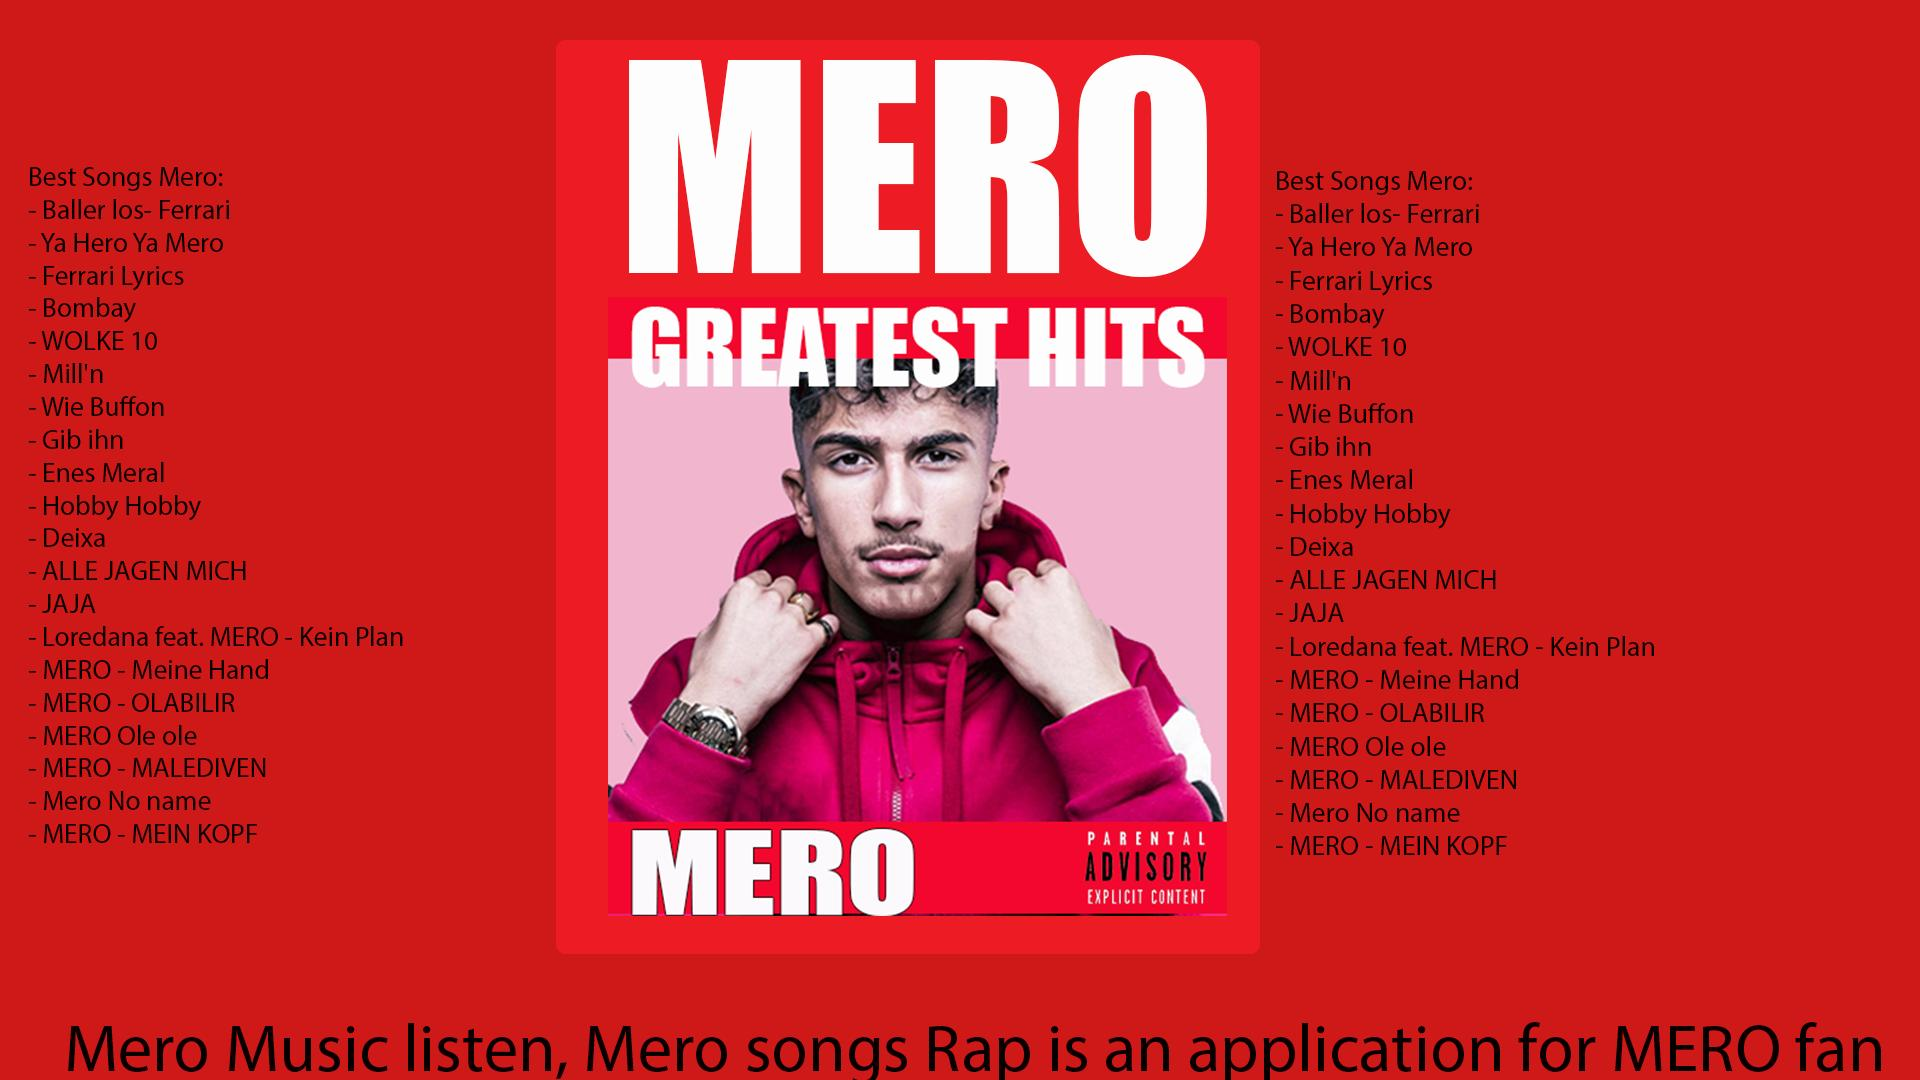 Mero Greatest Songs ميرو For Android Apk Download